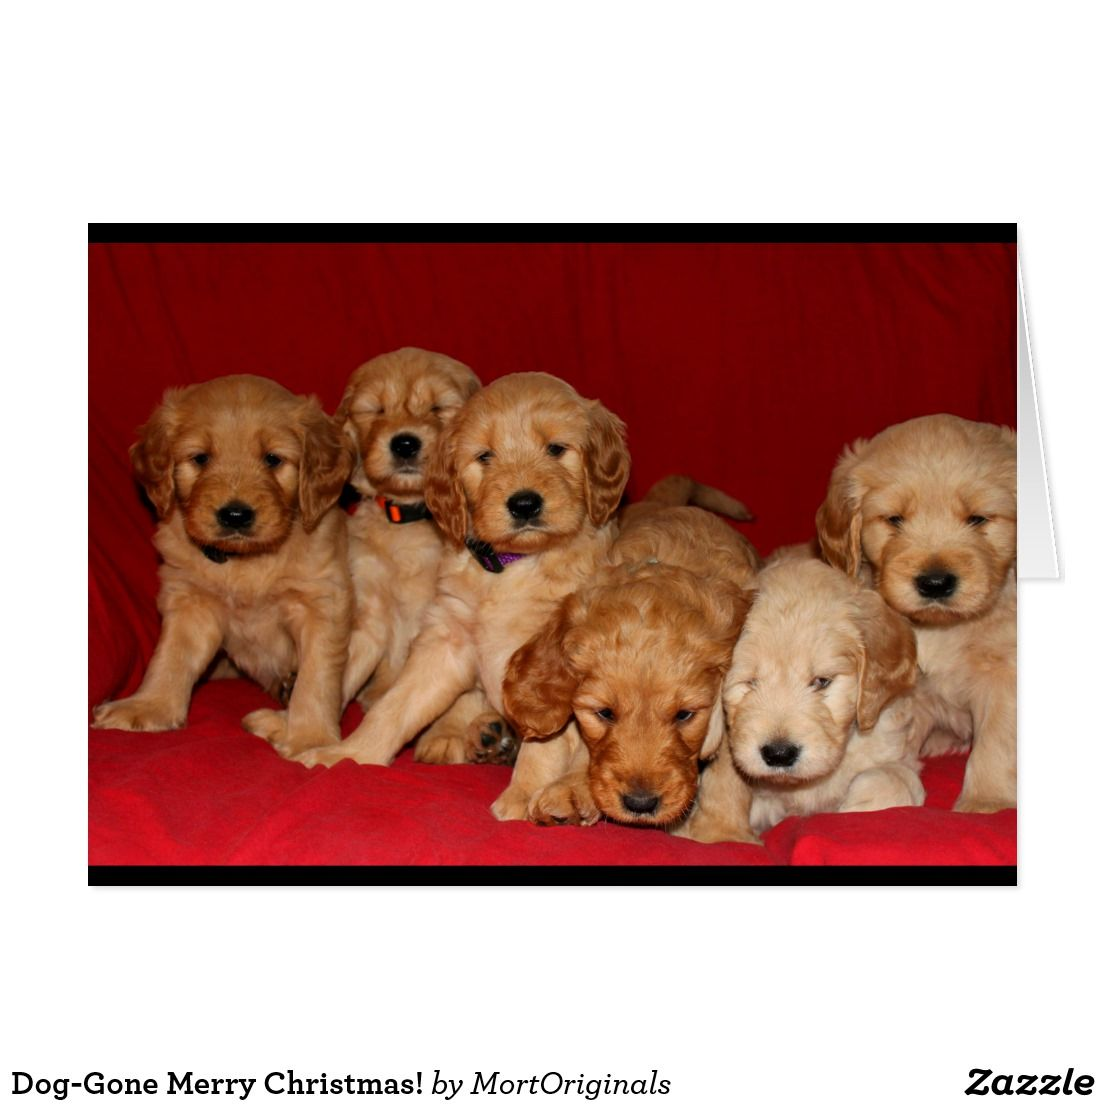 Doggone merry christmas holiday card with